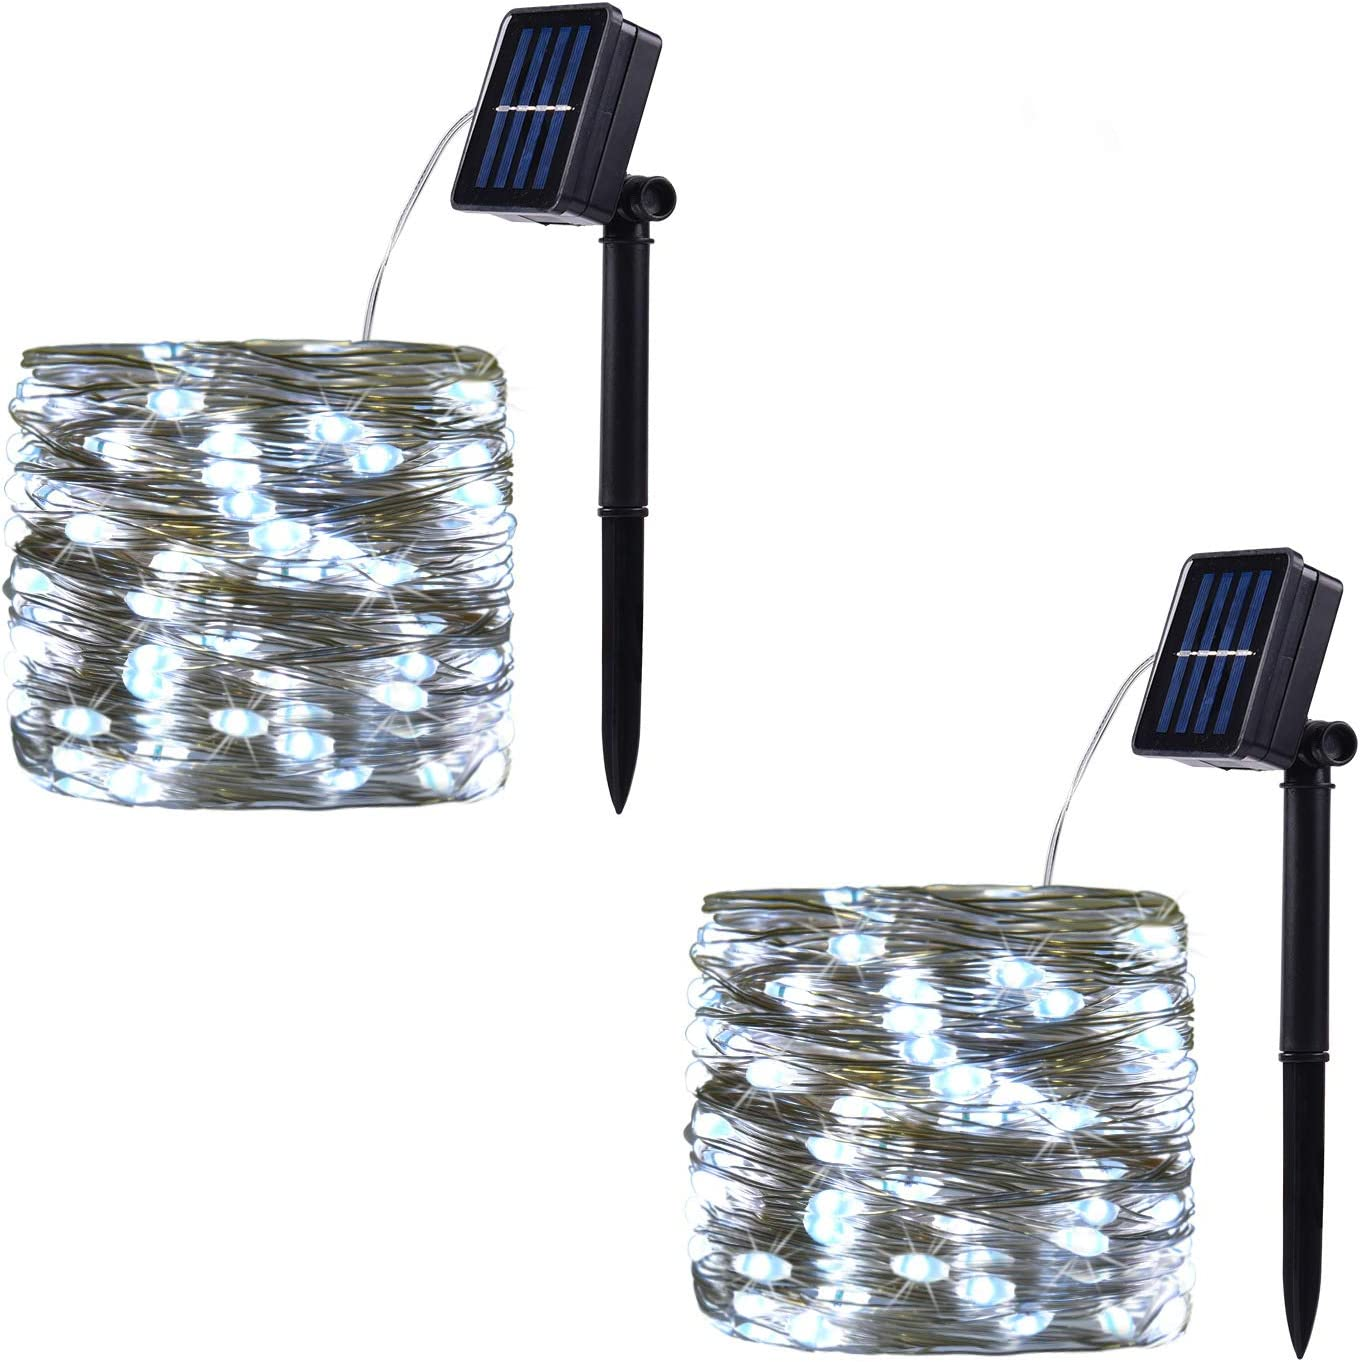 2 Pack 100 LED Solar Powered String Lights, Outdoor Waterproof Copper Wire 8 Modes Fairy Lights for Garden, Patio, Wedding, Party, Christmas, Home (White)